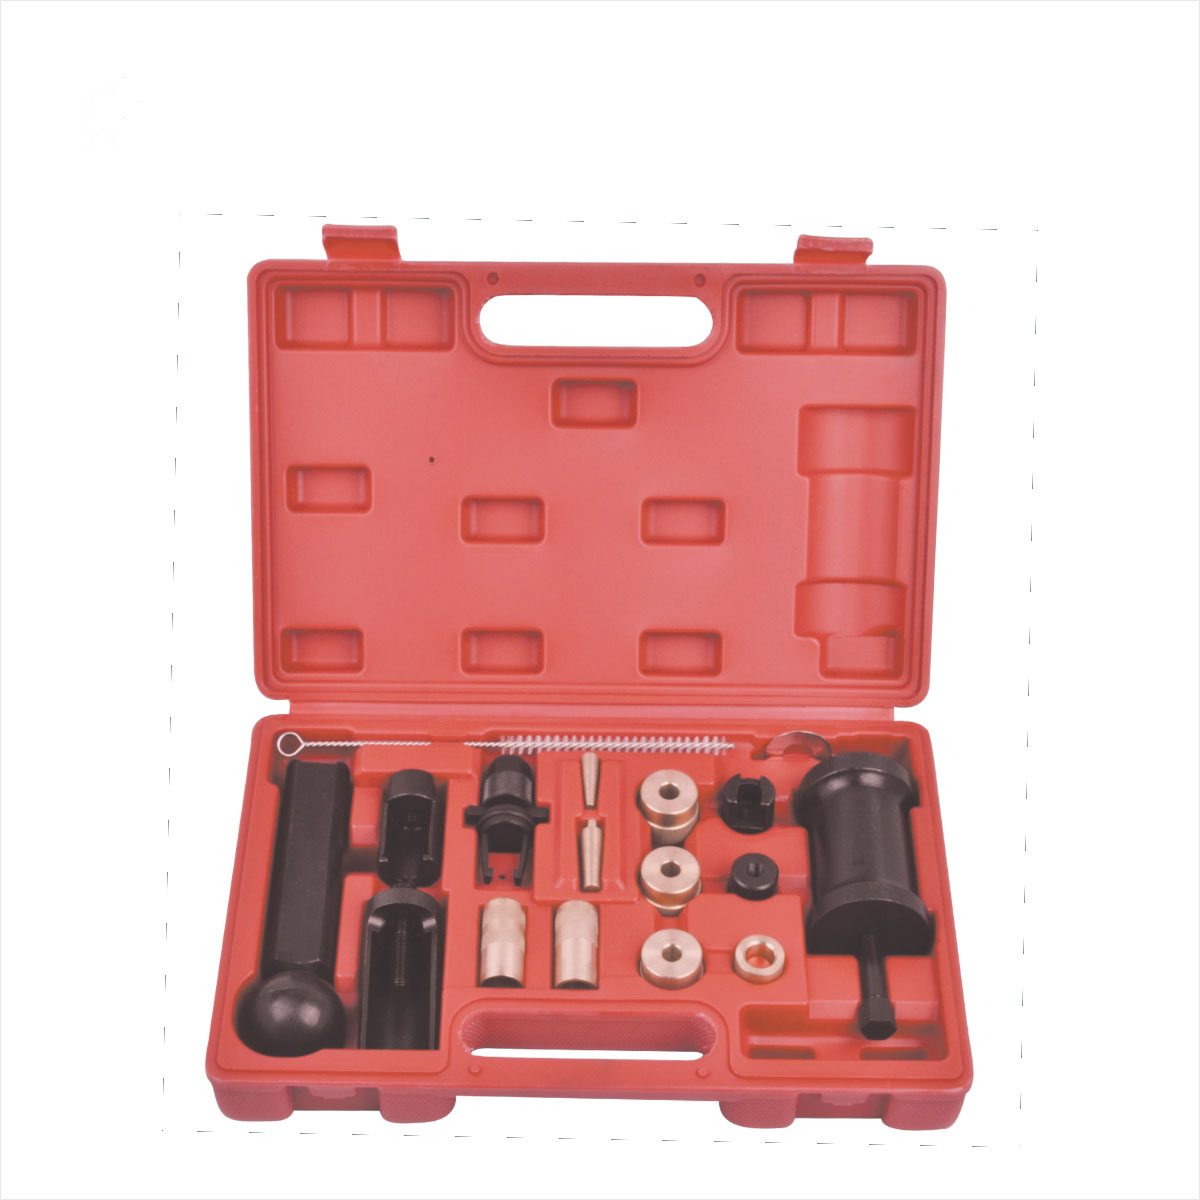 18PC Injector Puller Removal Installer Tools Set For VAG Audi VW FSI Petrol benbaowo tools sealey diesel injector puller mercedes cdi heaters work tools